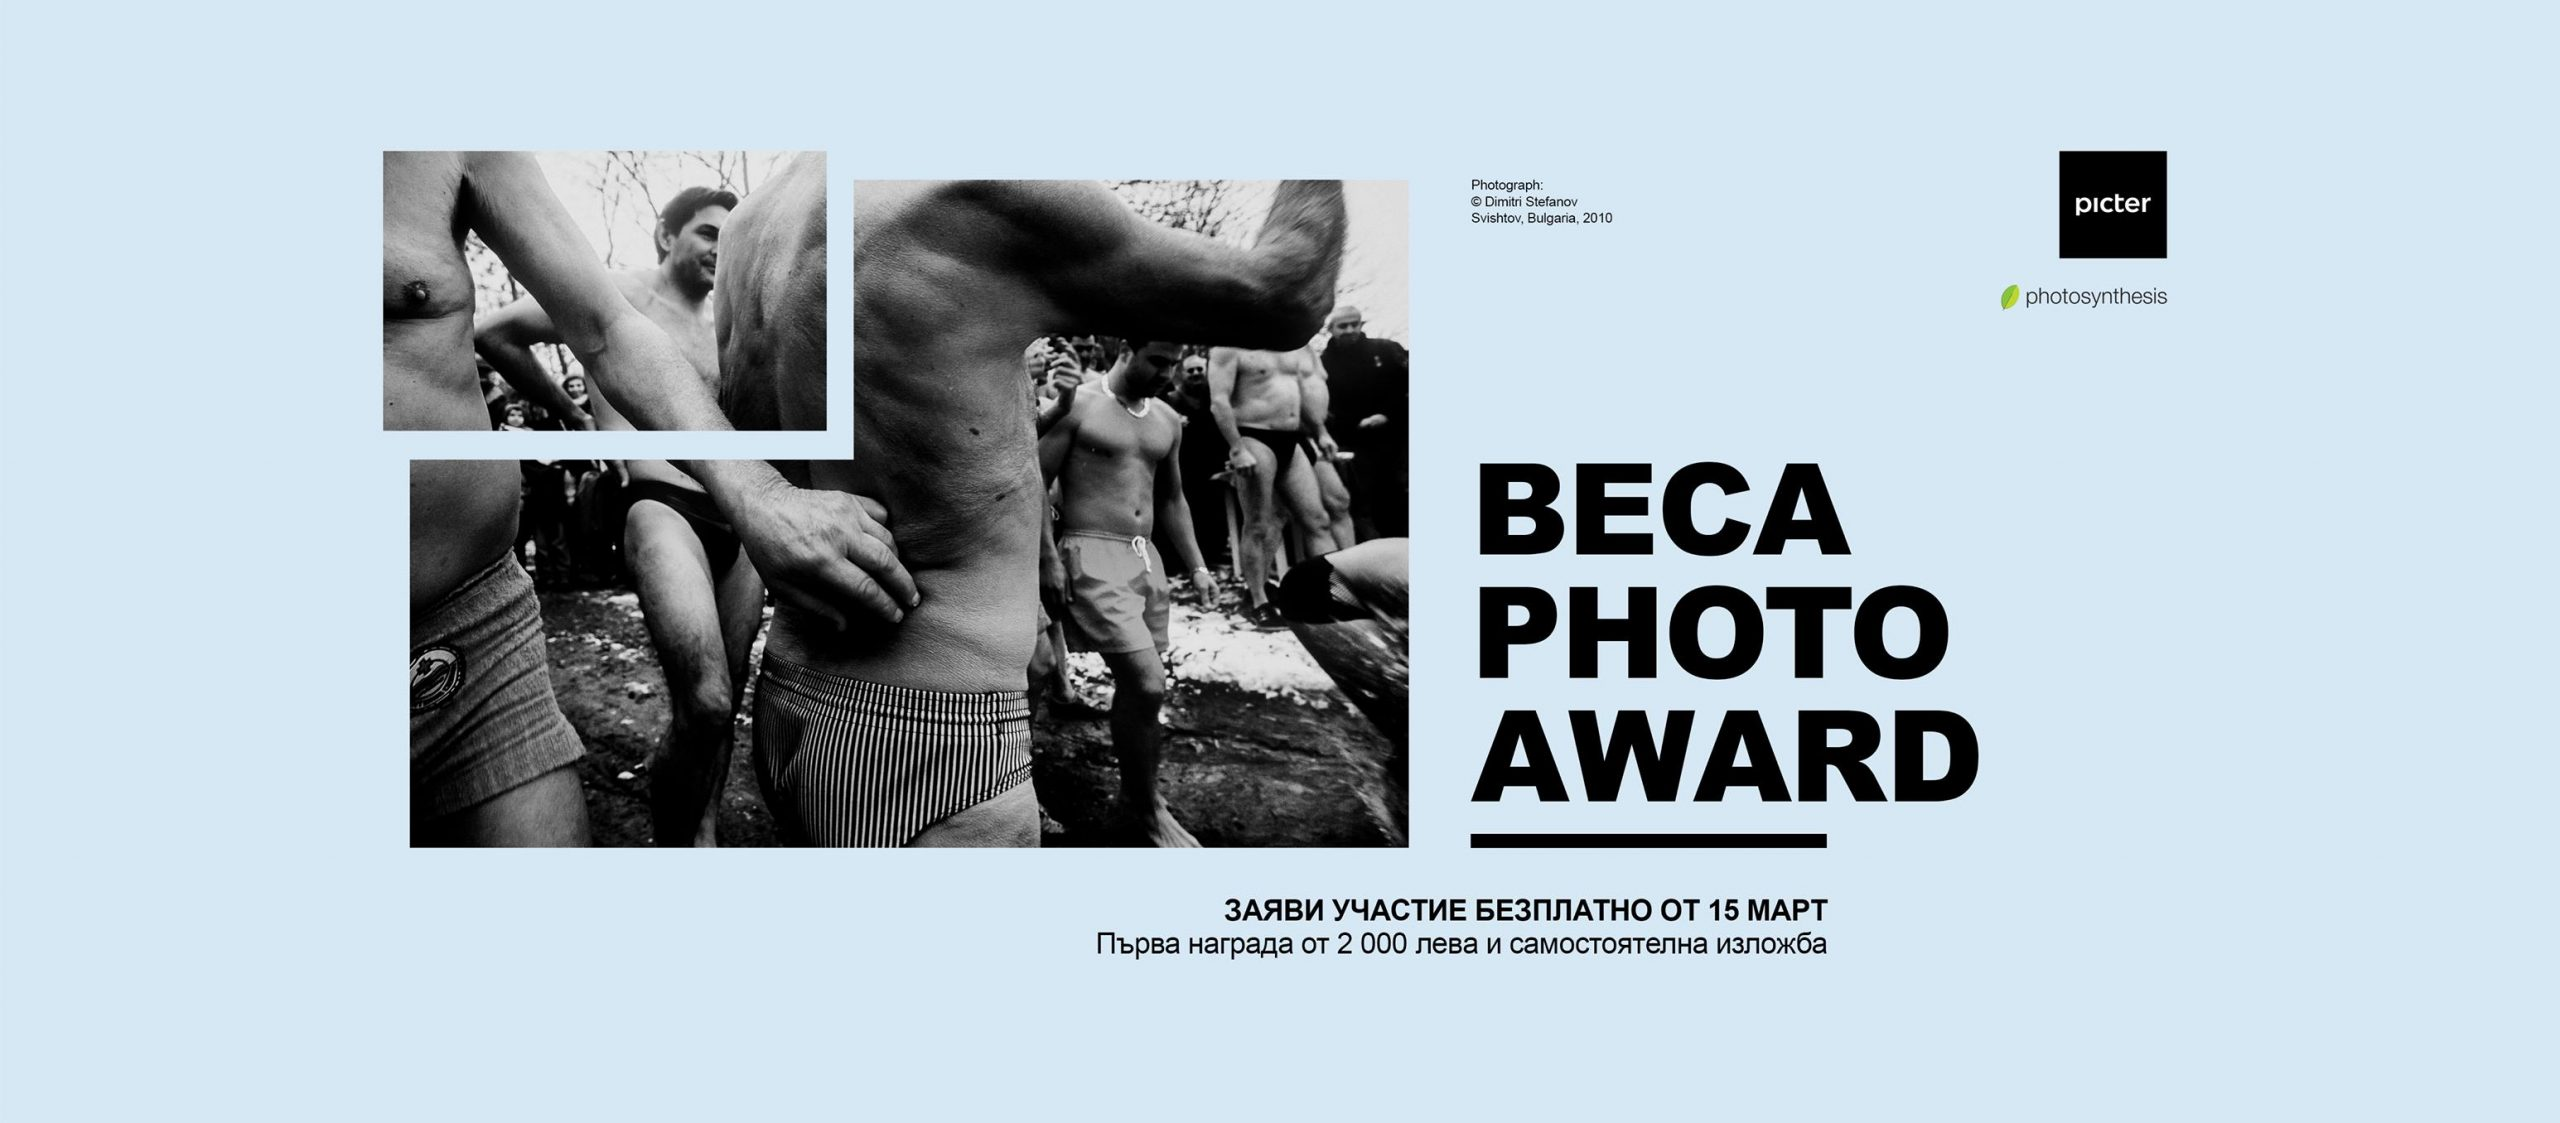 The Winners of the BECA Photo Award Competition will Be Announced Soon